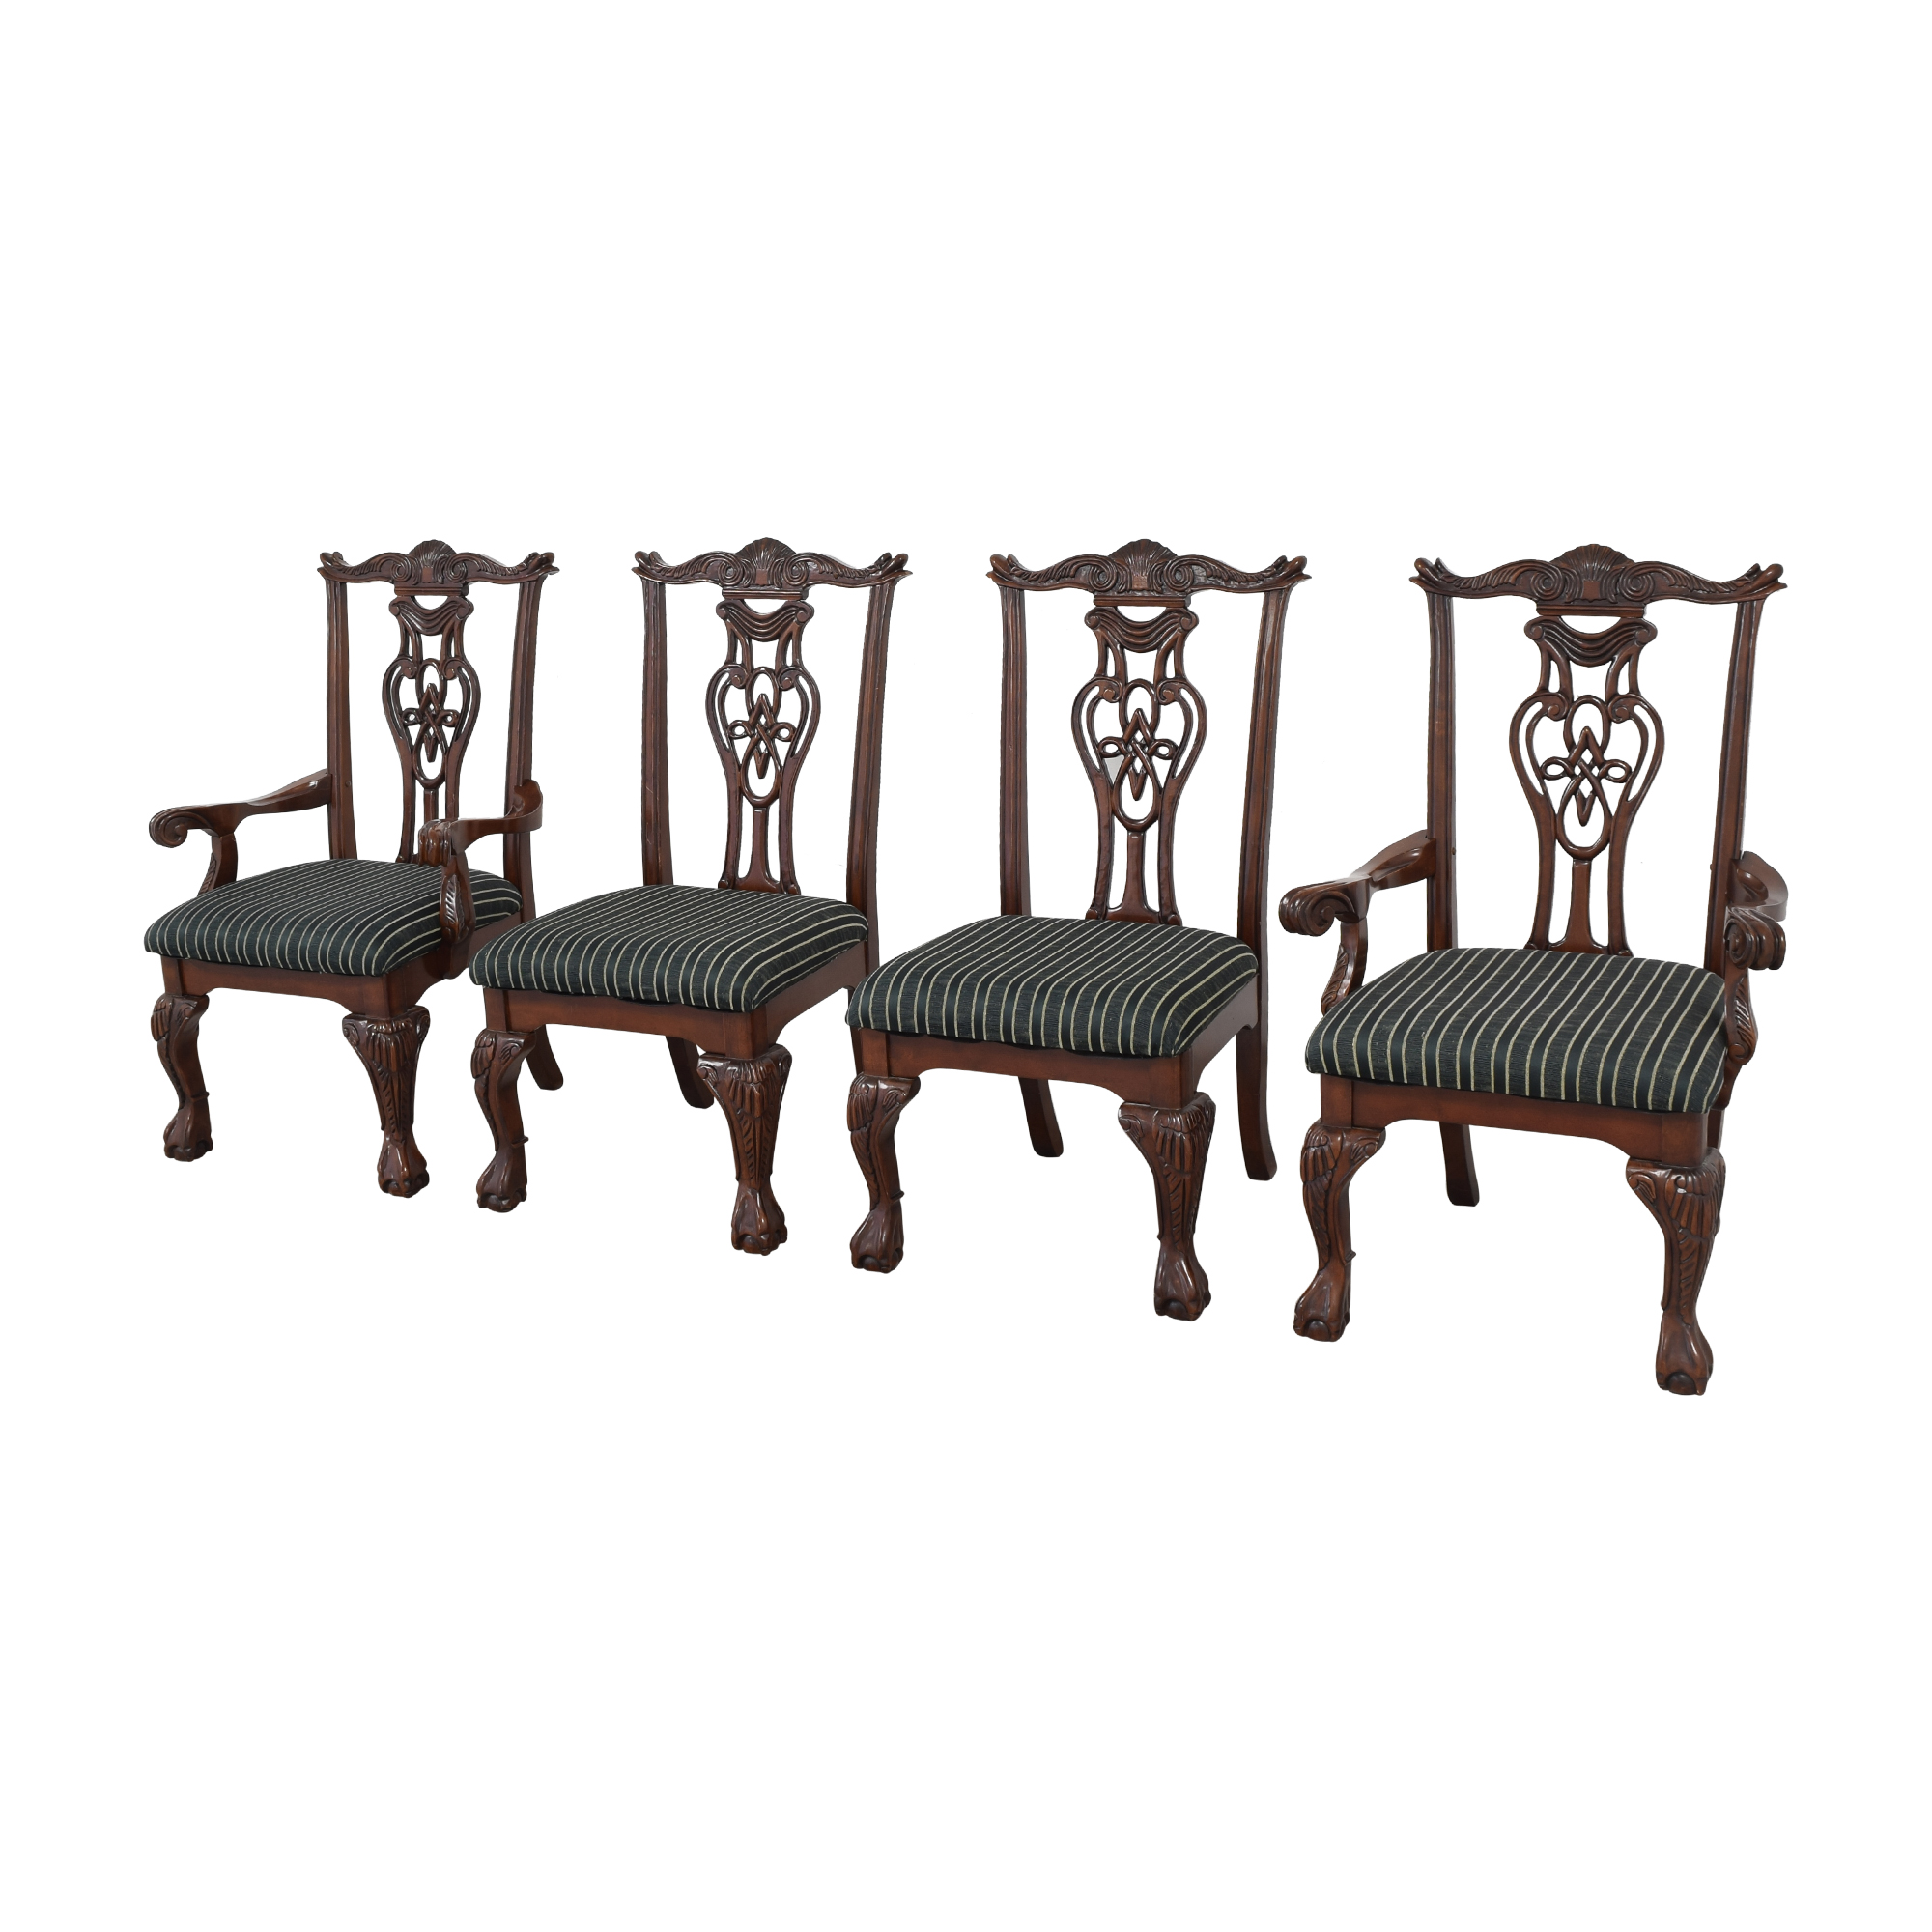 Chippendale Dining Chairs for sale